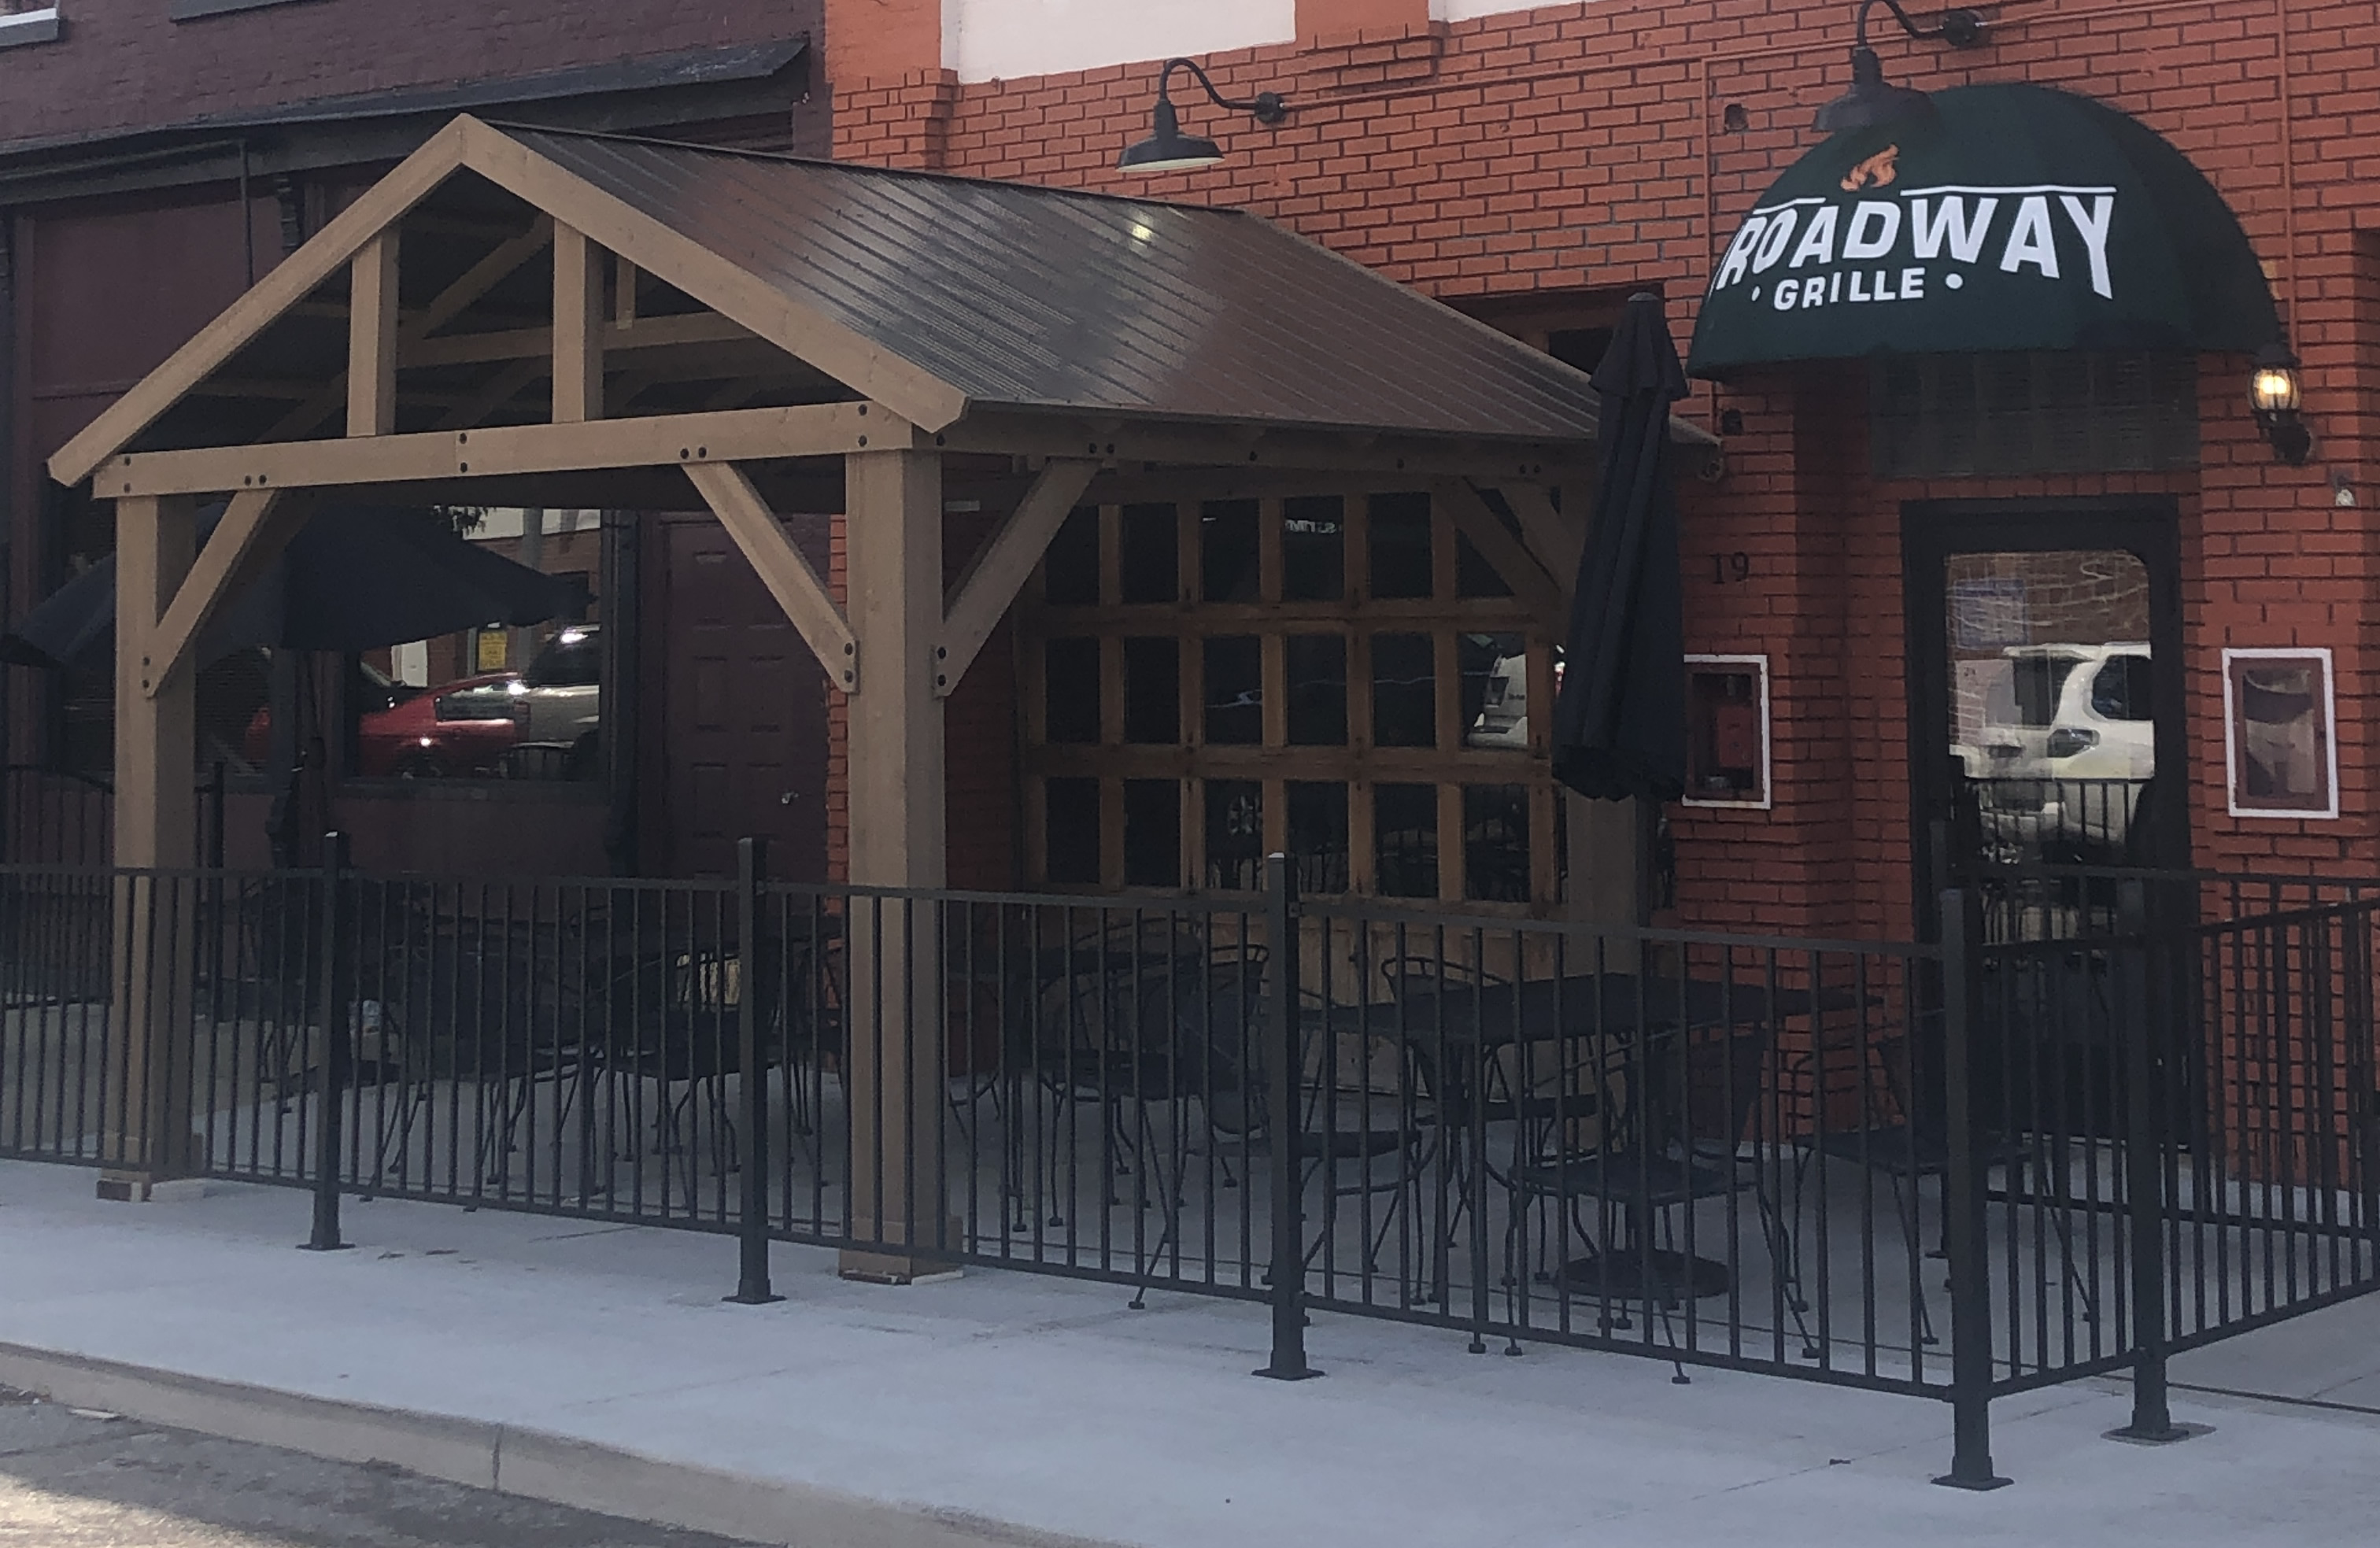 Broadway Grille Restaurant Coldwater